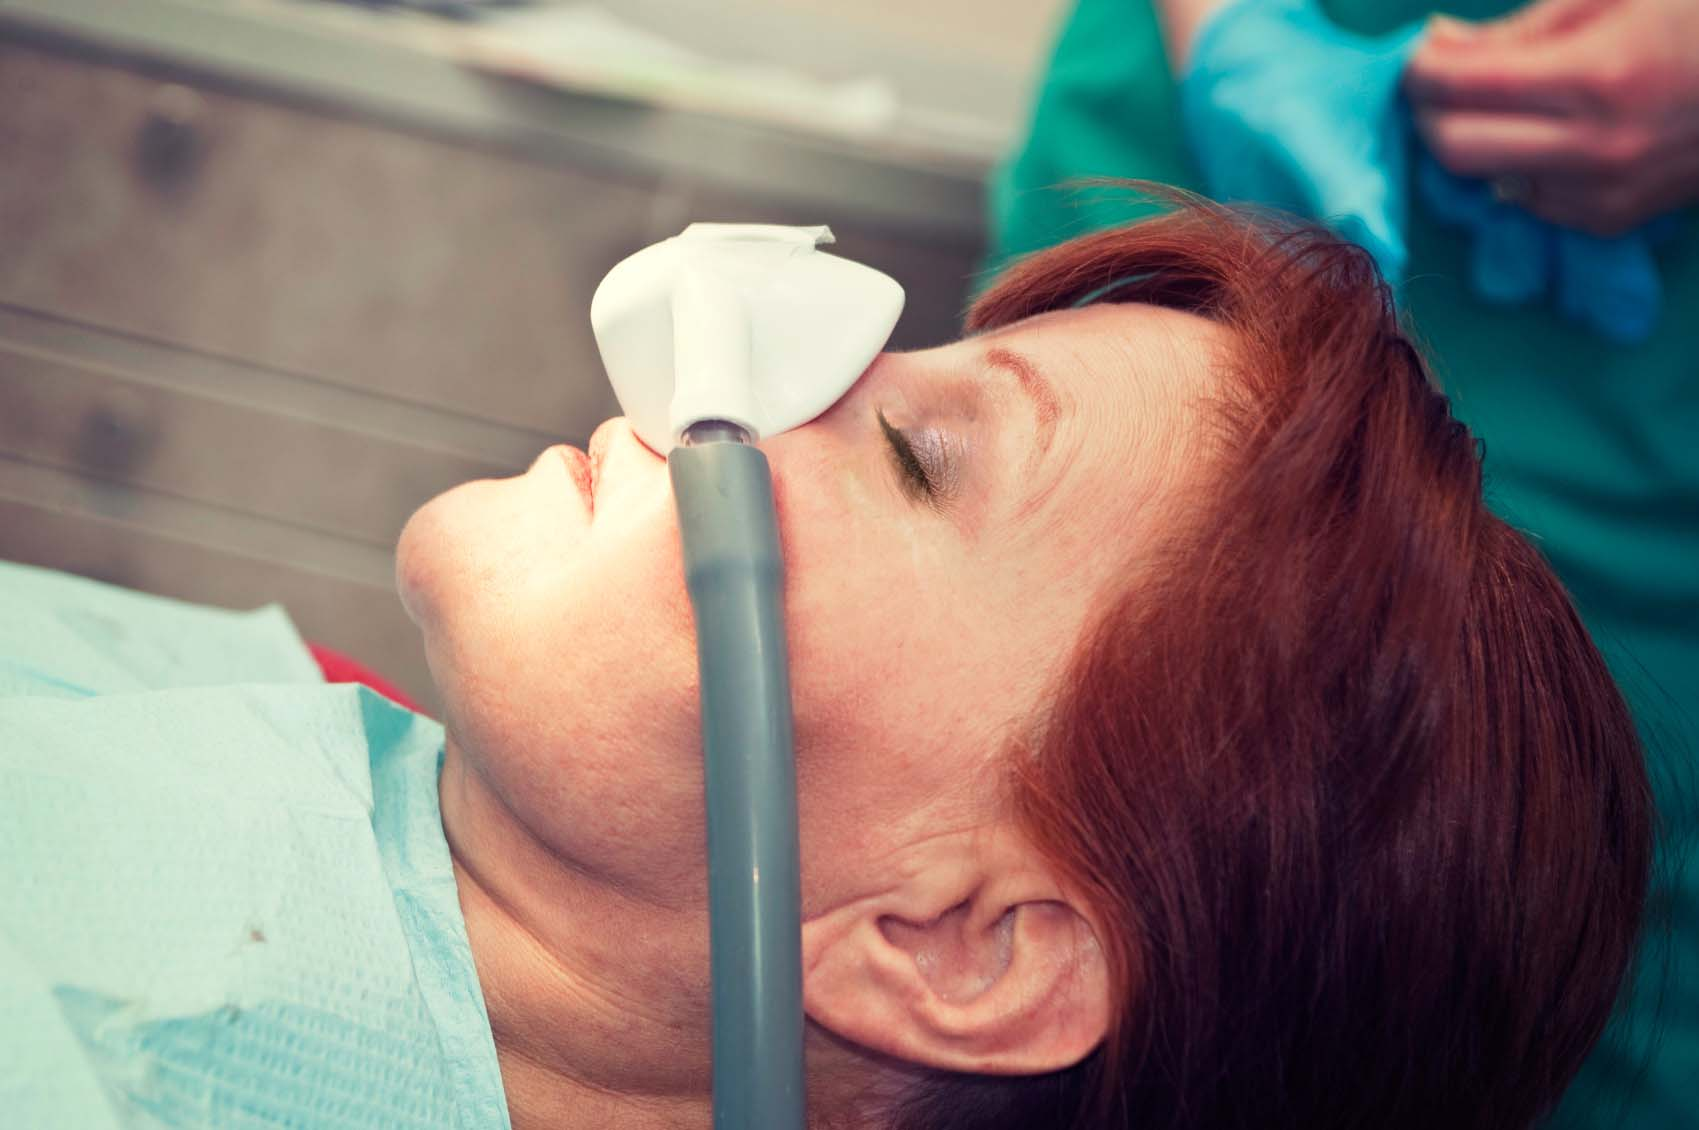 A woman undergoing dental sedation